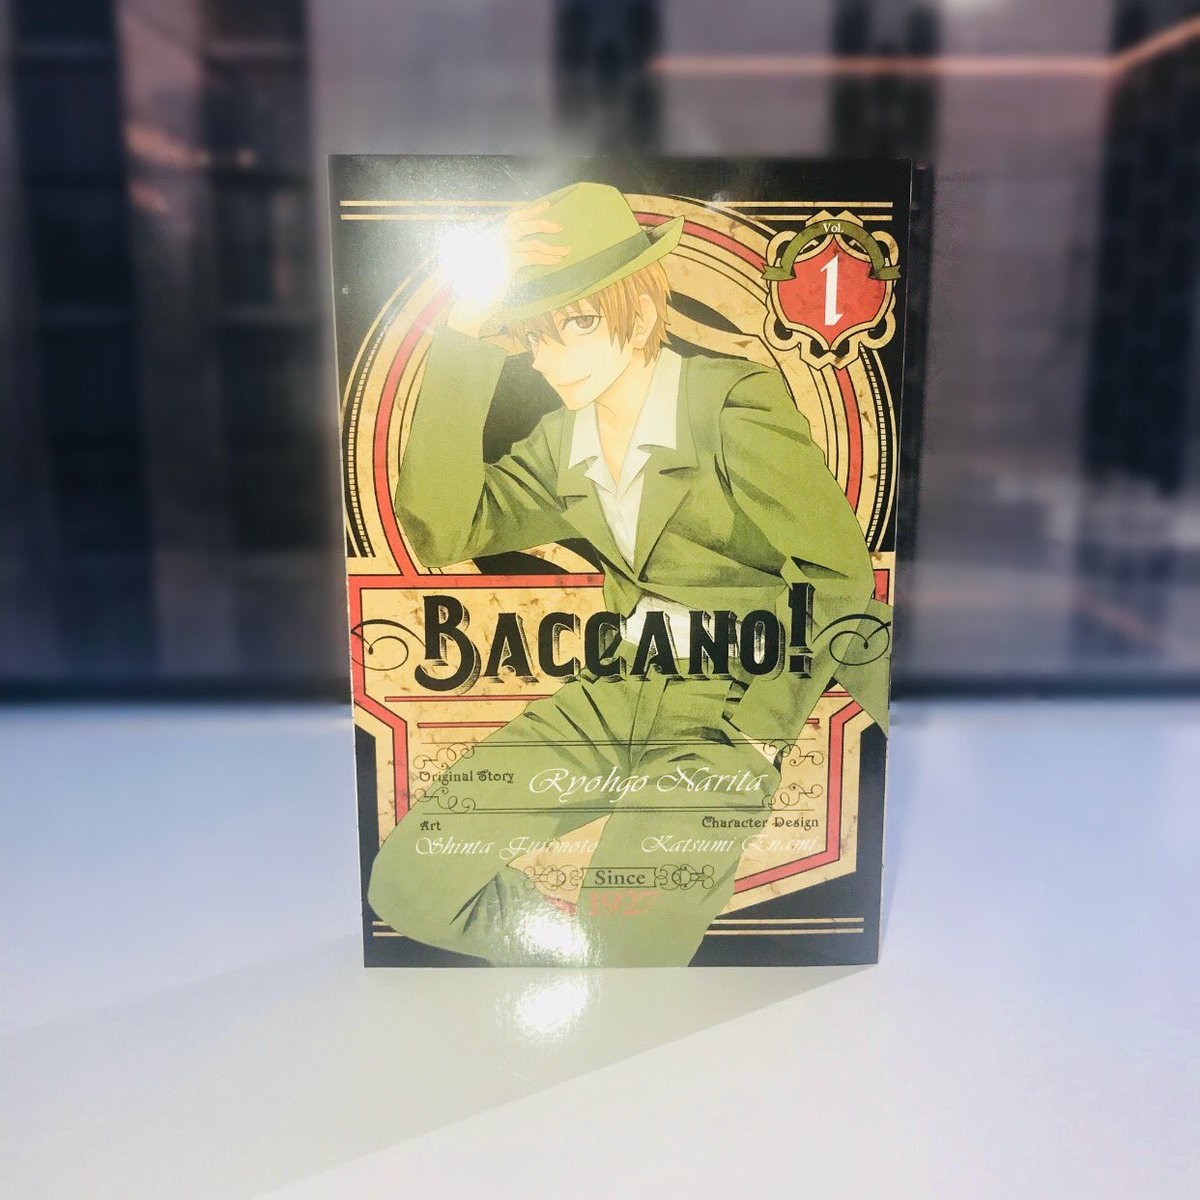 test Twitter Media - ✨ Get a taste of old New York City with gangsters and big ambitions in the new Baccano! volume!  Baccano!, Vol. 1 (manga) releases on January 30th! Pre-orders available now 🍺🎲 https://t.co/x3Xnaqergs